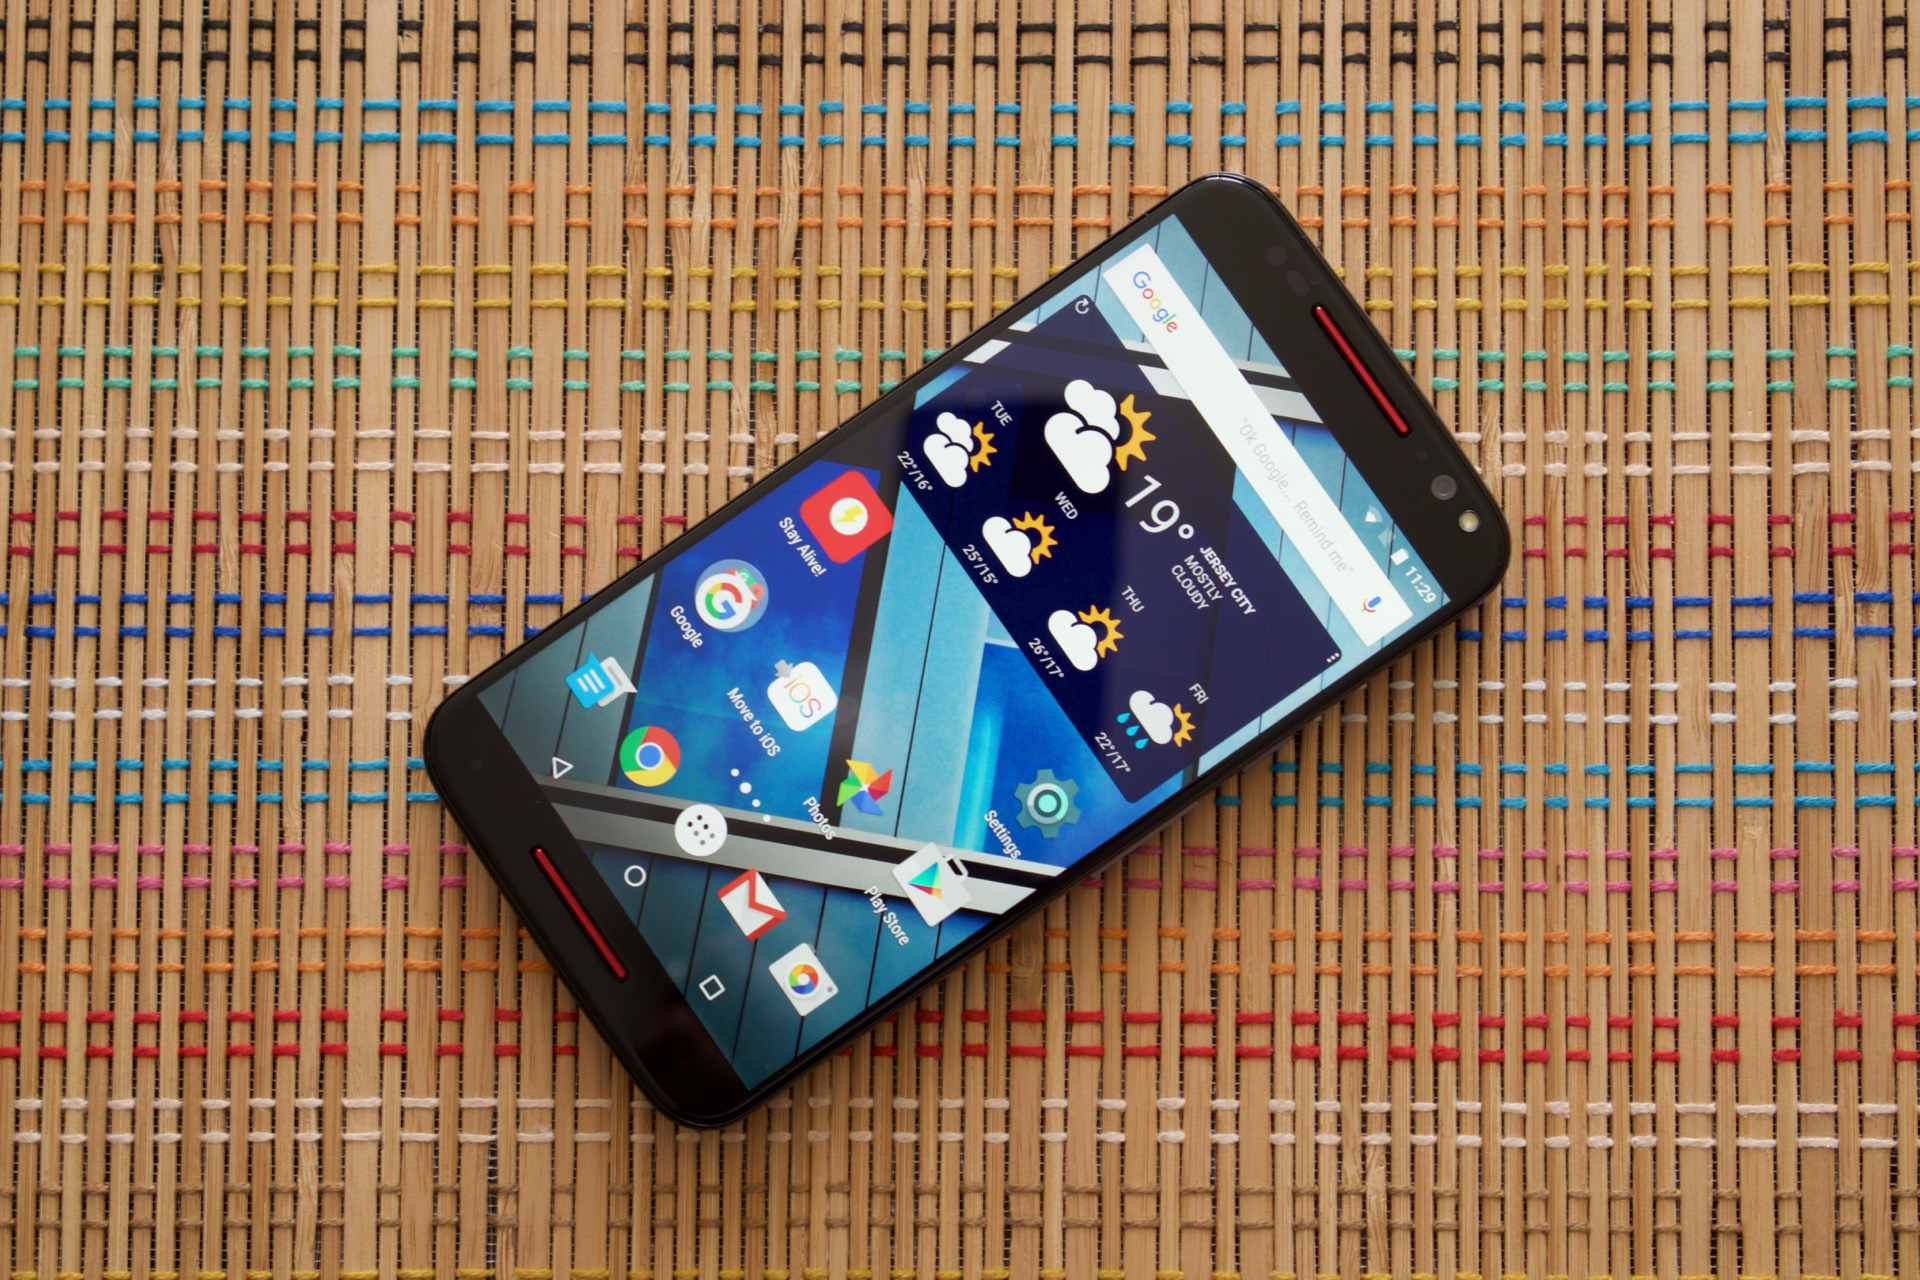 Motorola is updating a decent-sized list of phones, but it's still hard not to be disappointed given the company's promises.